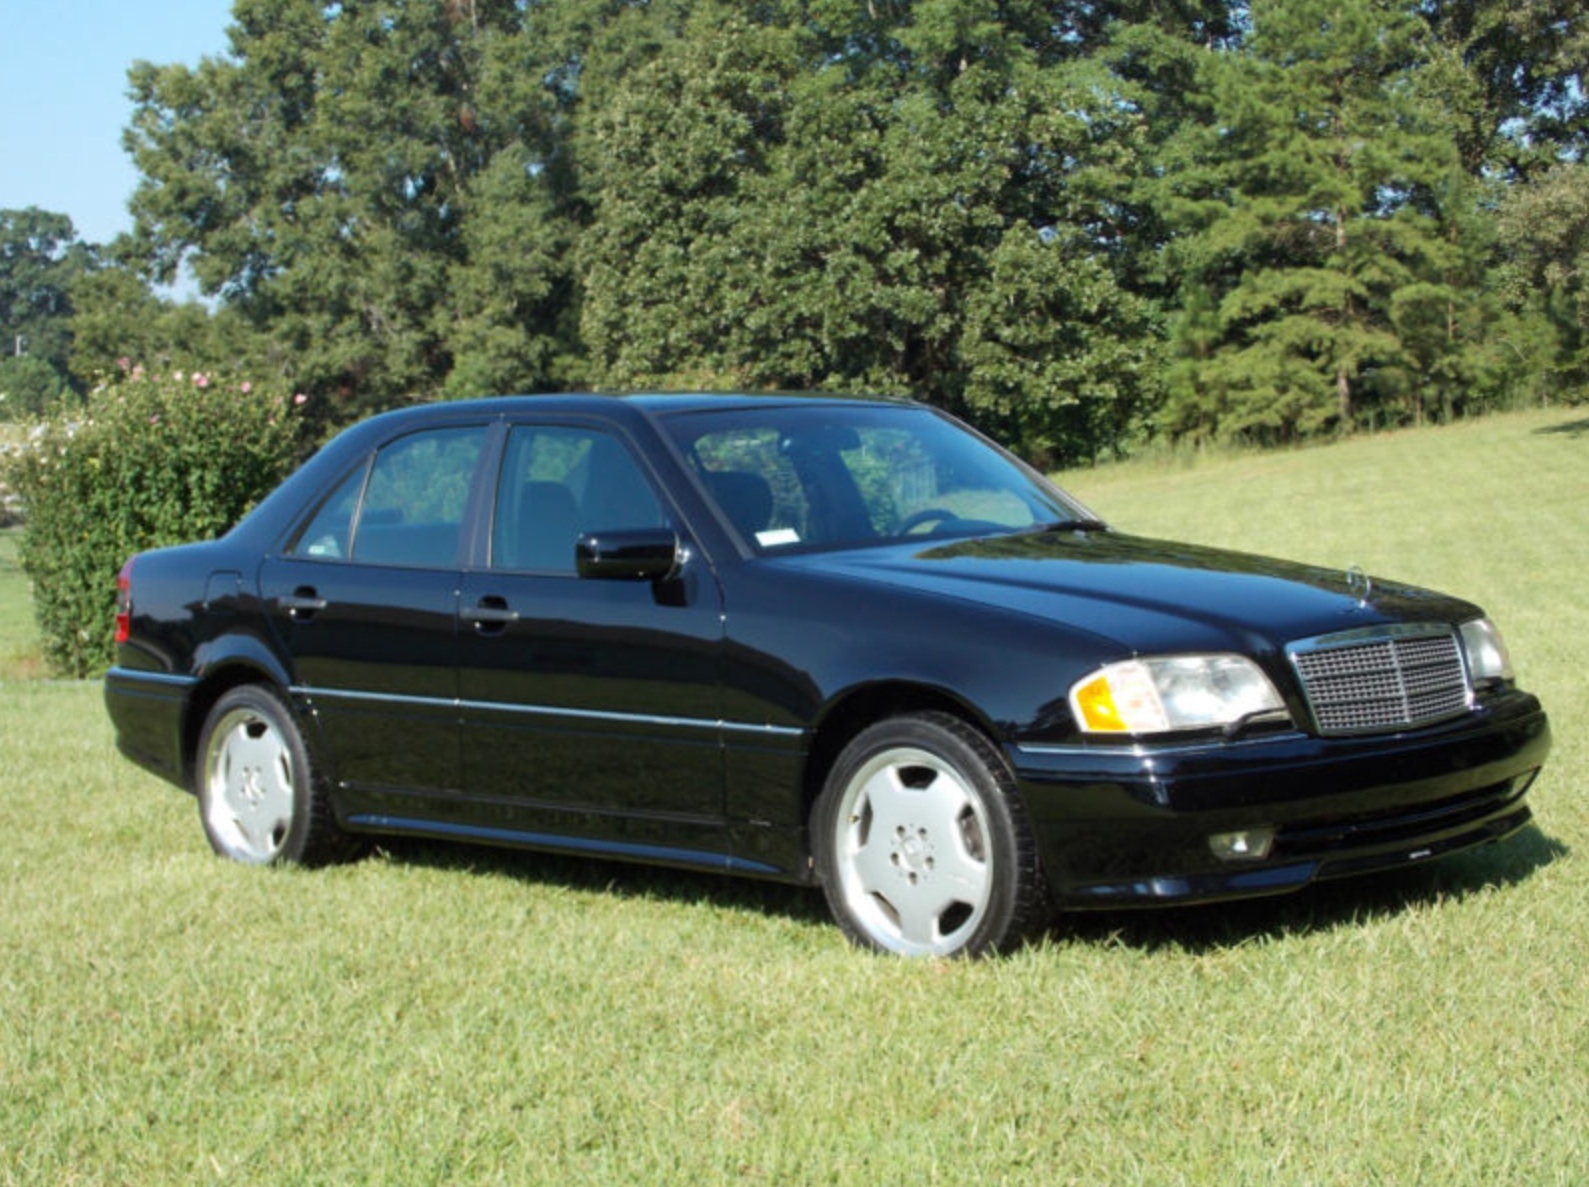 CLICK FOR DETAILS: 1996 Mercedes-Benz C36 AMG on eBay